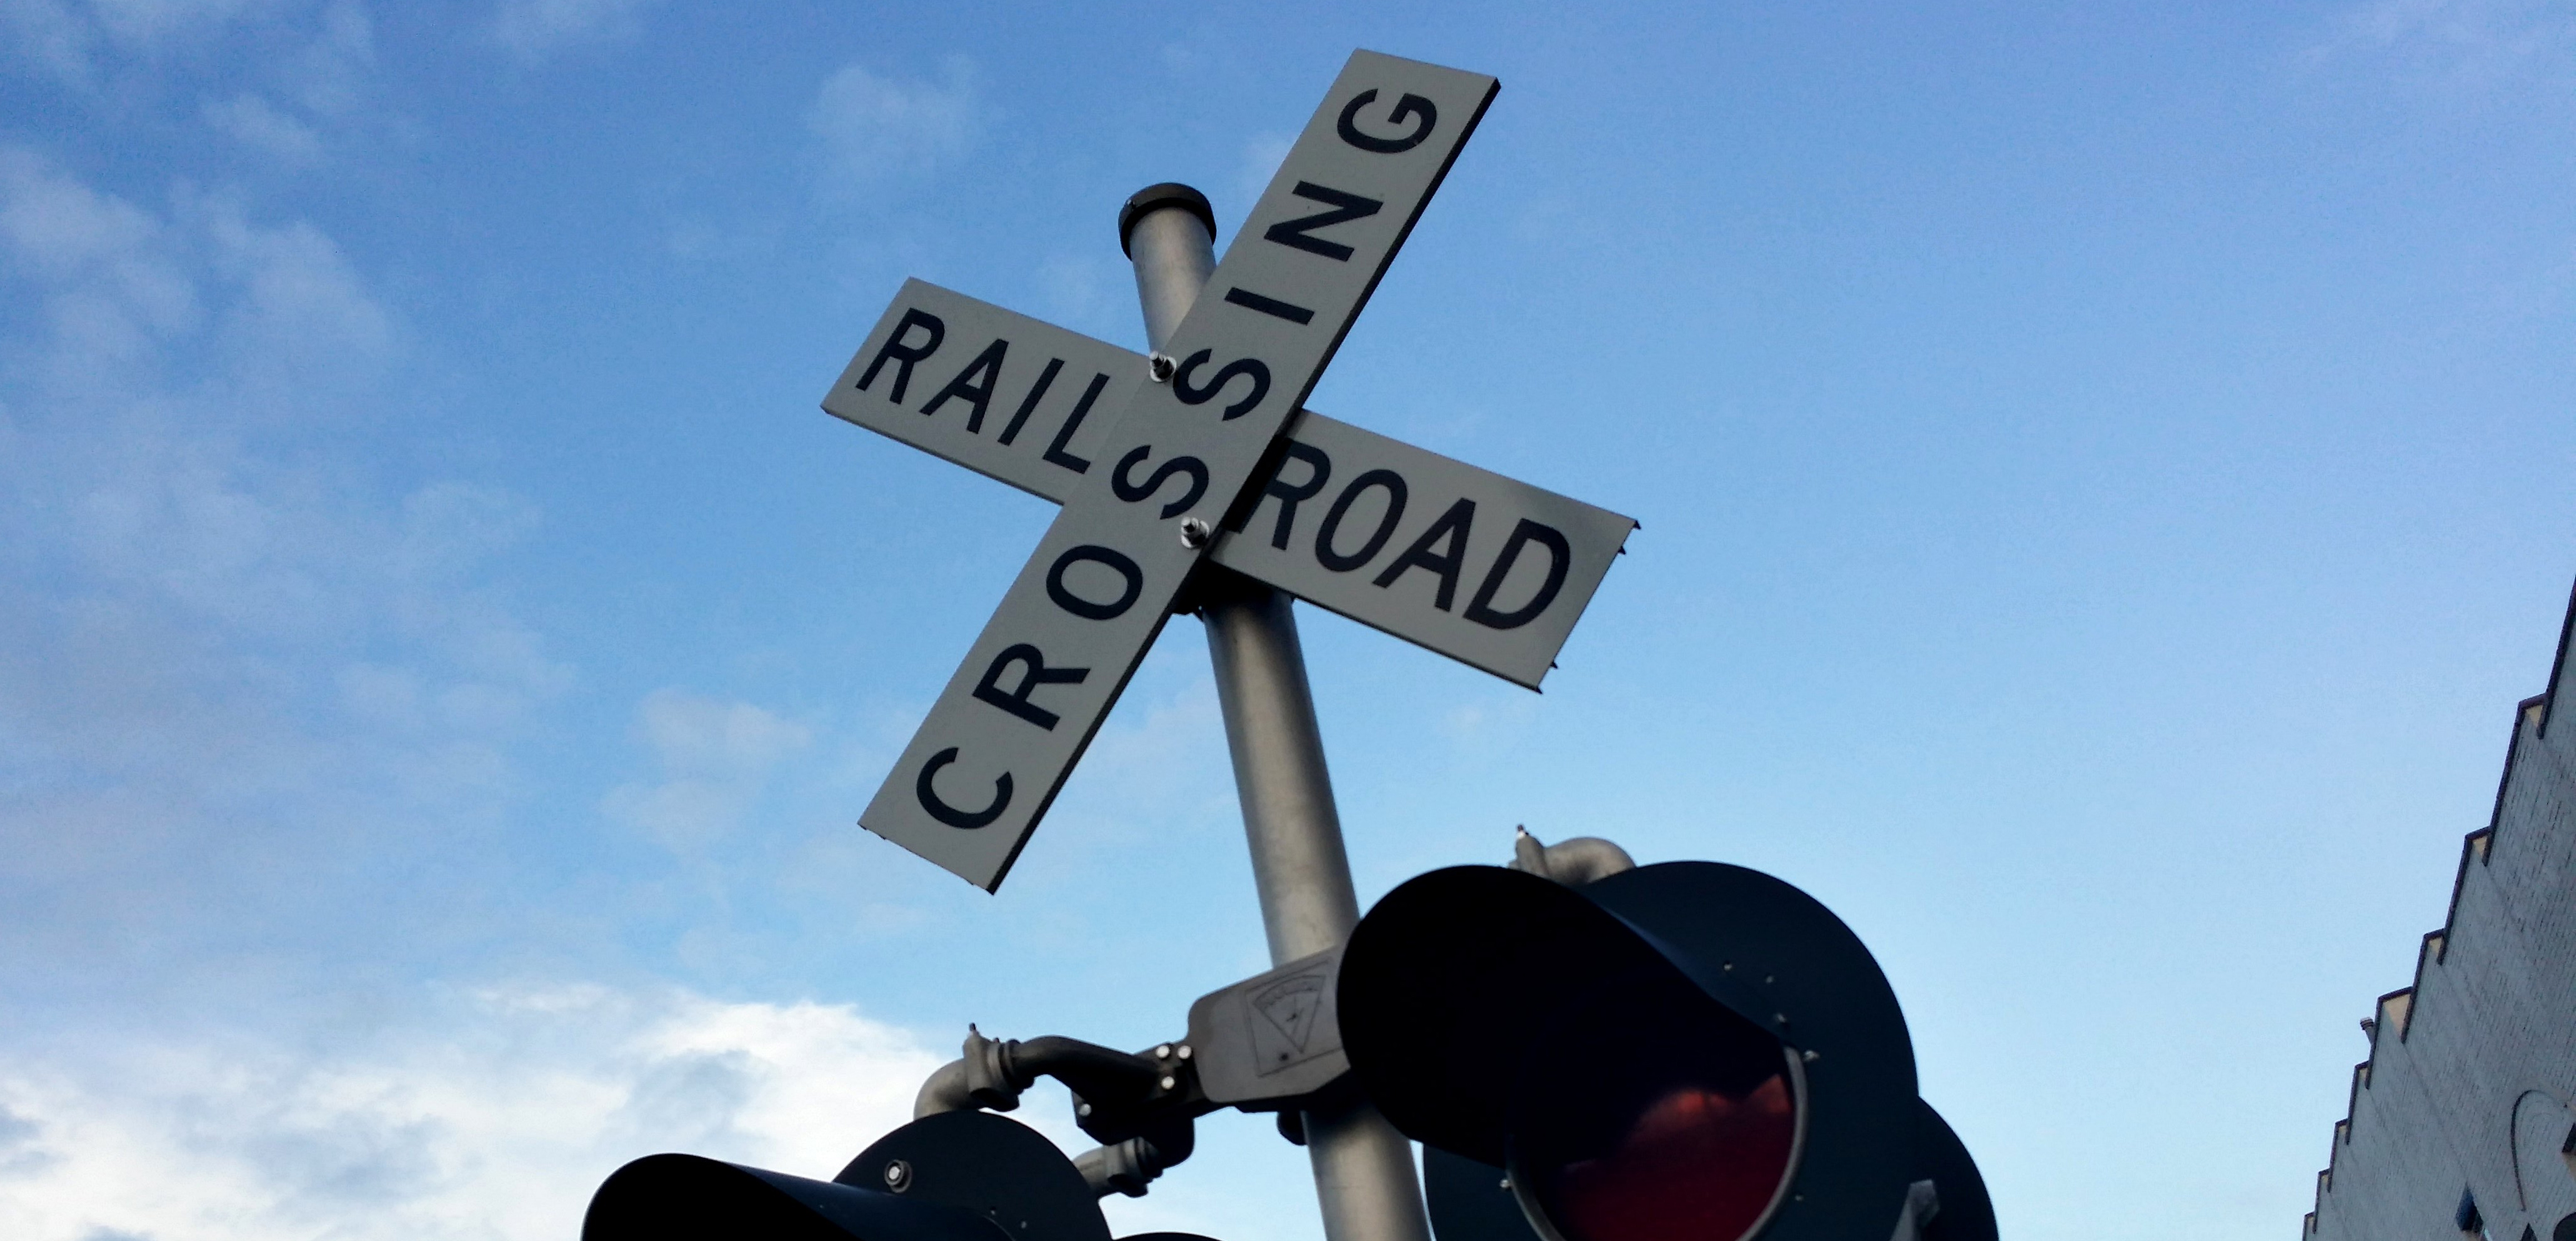 railroadcrossing.10.11